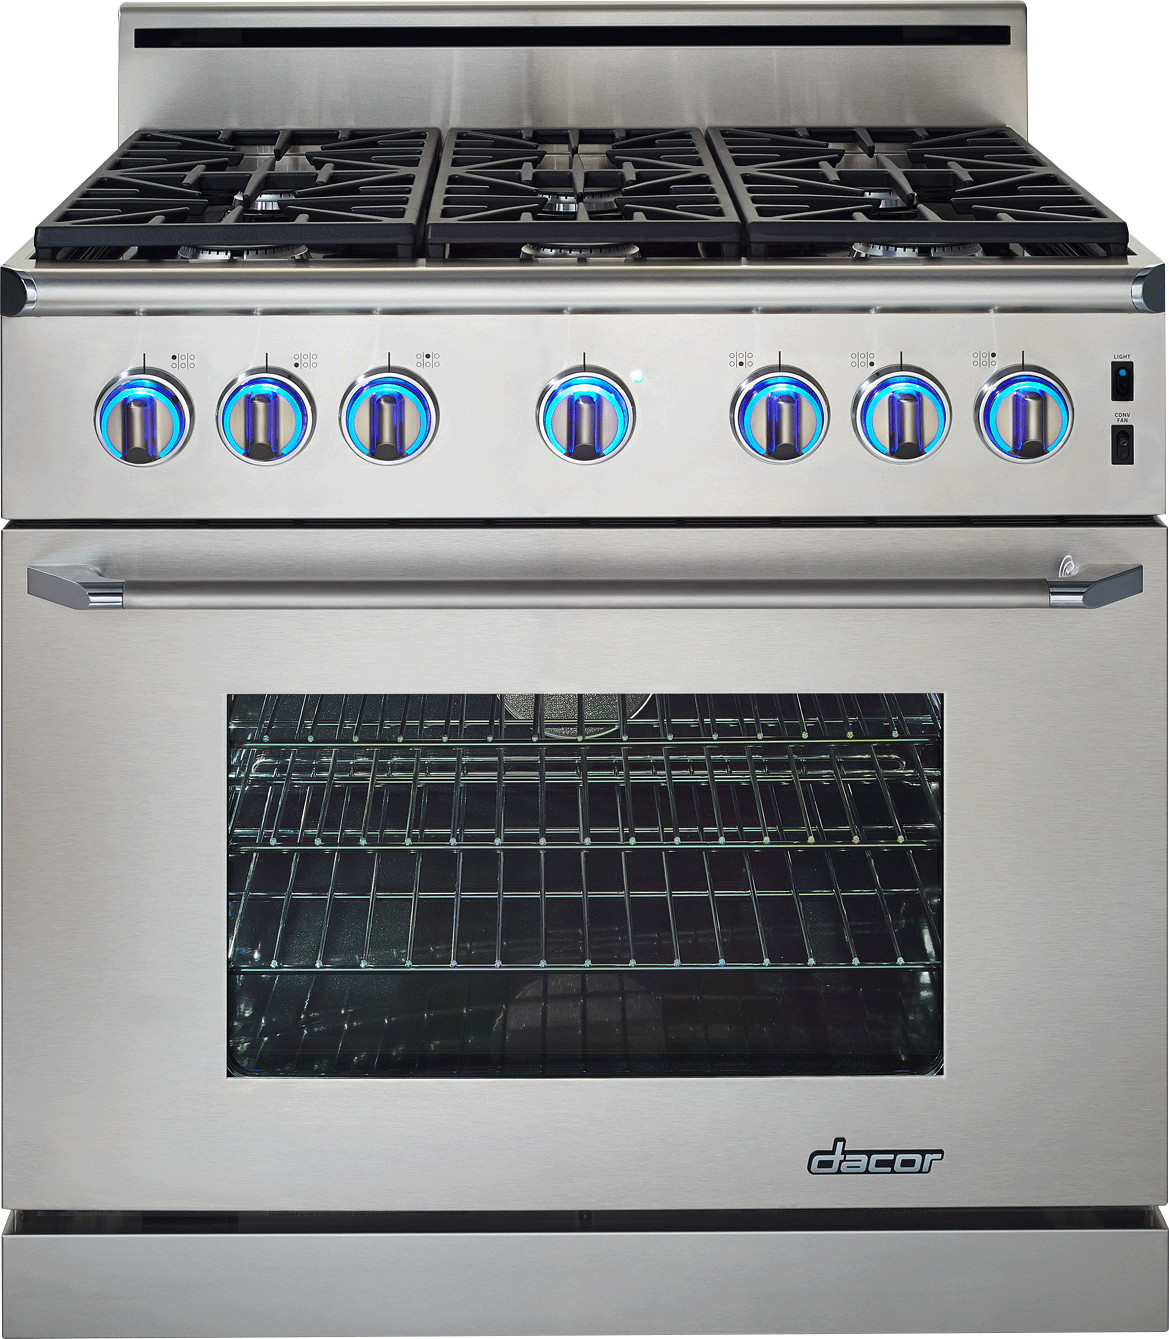 Dacor Countertop Stove : Dacor ER36GI 36 Inch Freestanding Gas Range with 5.4 cu. ft. Manual ...